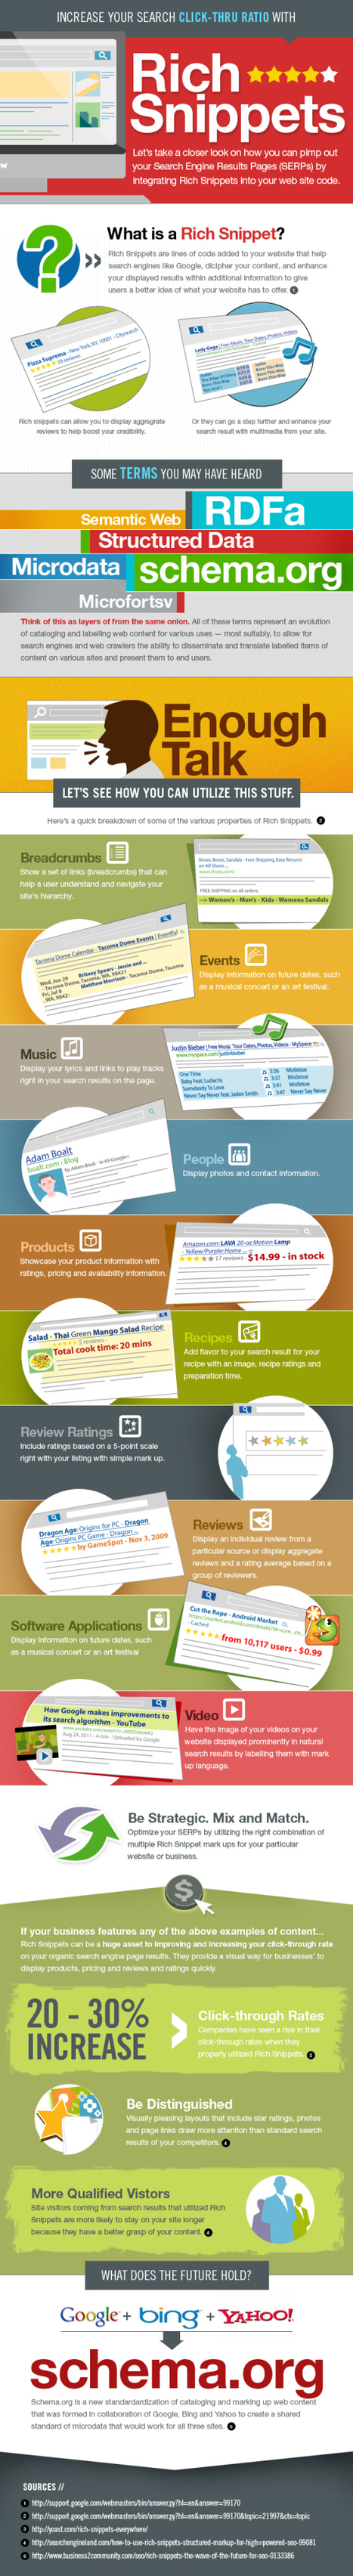 Infographie SEO : les Rich Snippets | AUTOVEILLE | Digital & Mobile Marketing Toolkit | Scoop.it